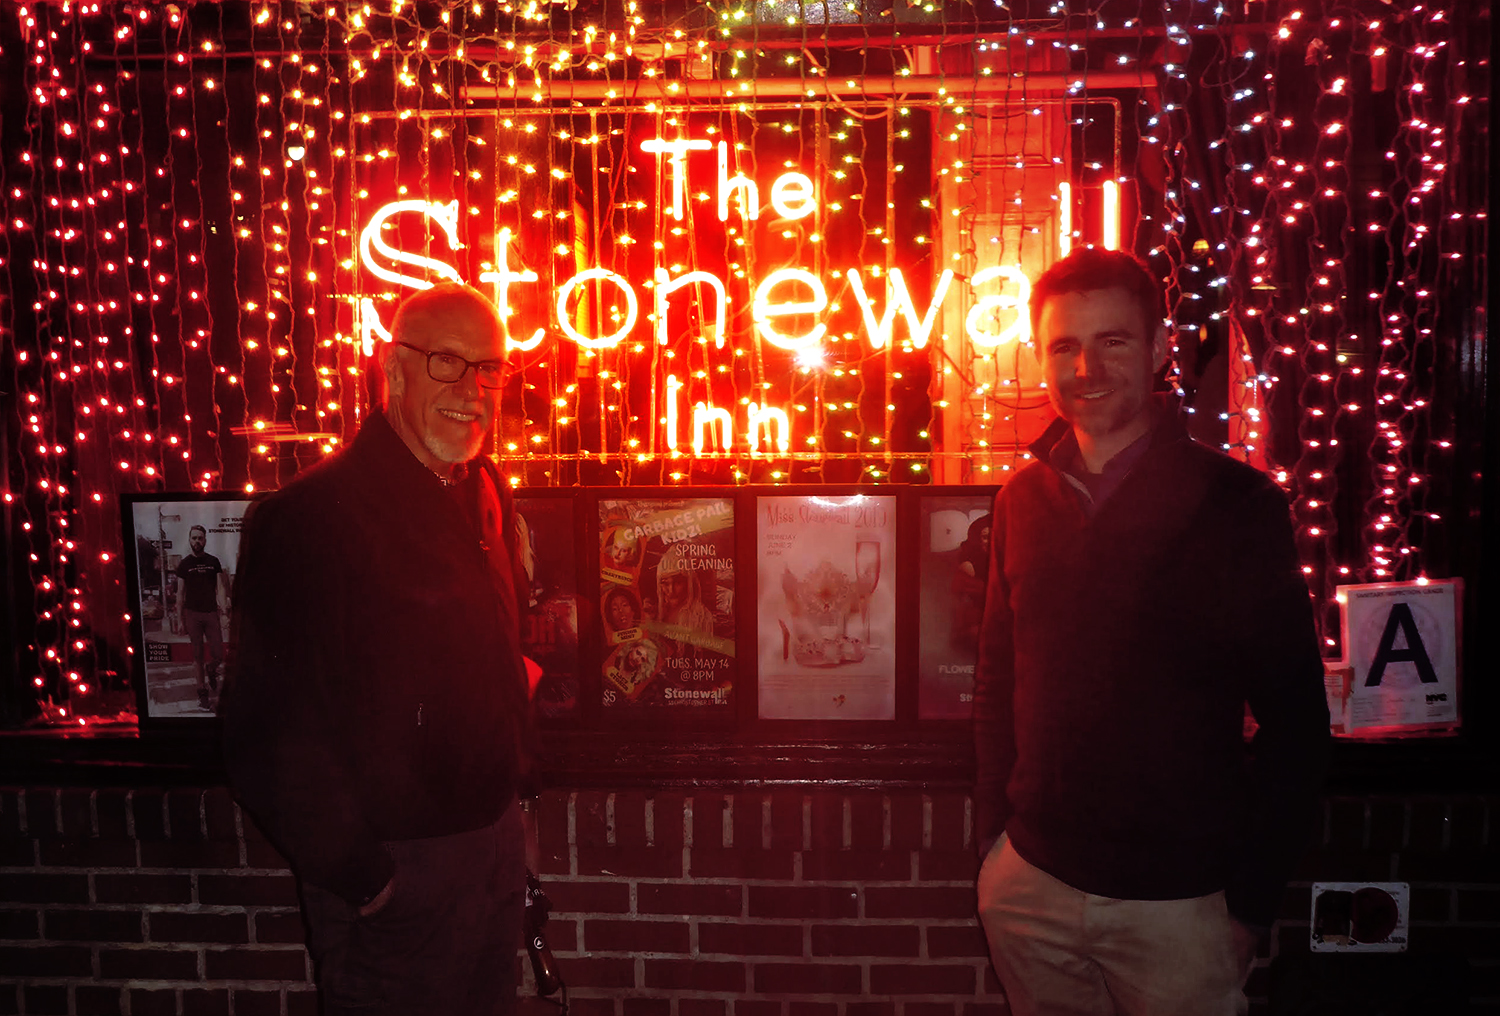 A book like 'Stonewall' calls for us to come together and last night, a few blocks away from the historic Stonewall Inn itself, we did just that! Rob Sanders, sharing an evening (and an umbrella) with you— it doesn't get better. Thanks so much Howard Willams and the gracious team at the LGBT Center for having us, my dear Illustration Rep Pat Lindgren for being there as well, and to all those who came-